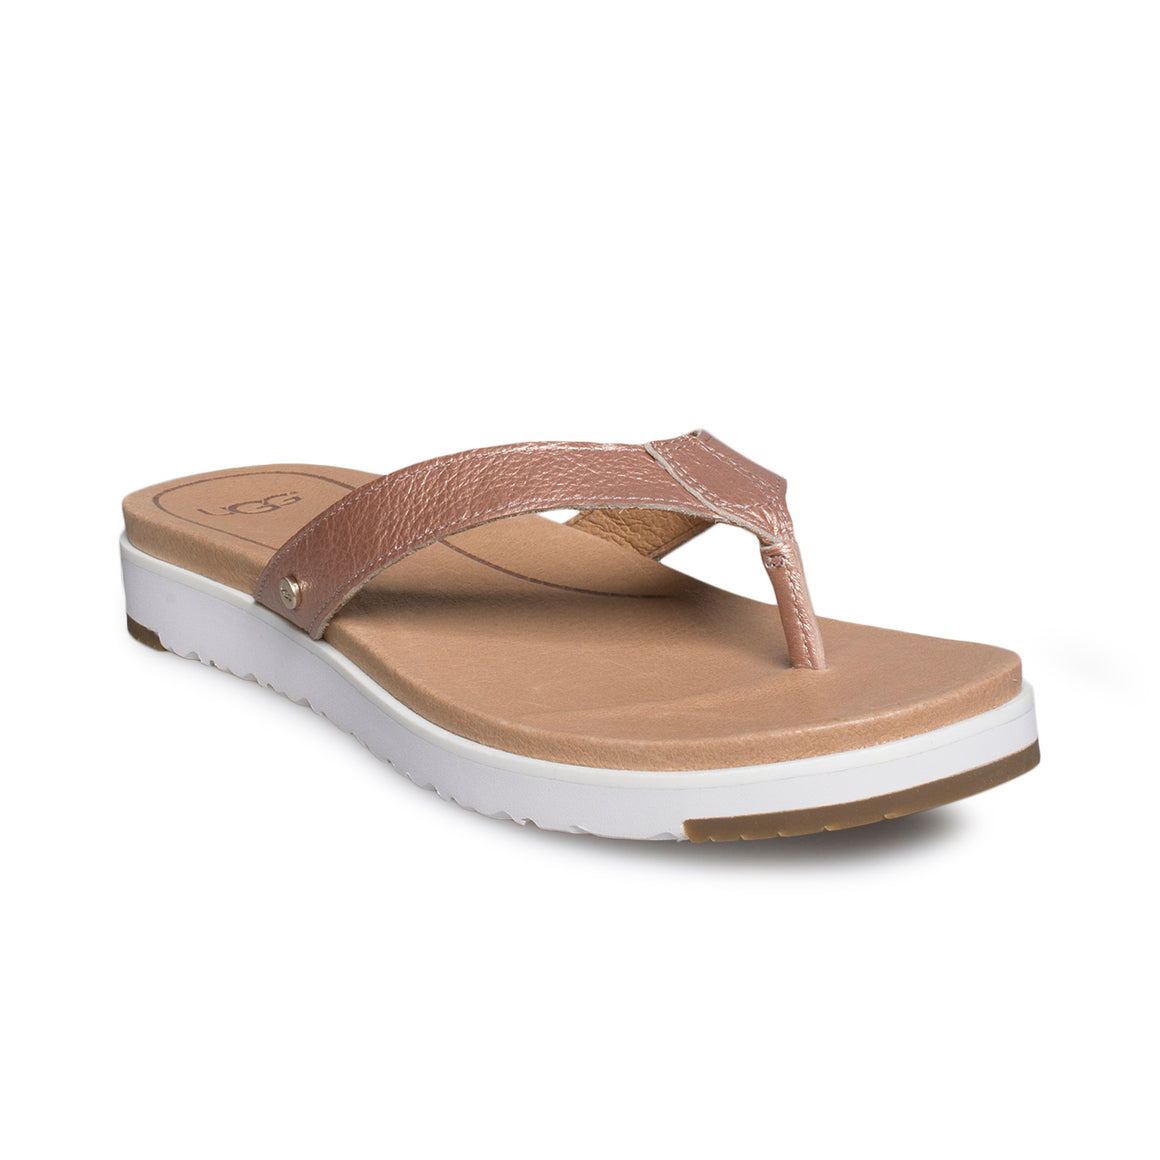 UGG Lorrie Metallic Rose Gold Flip Flops - Women's